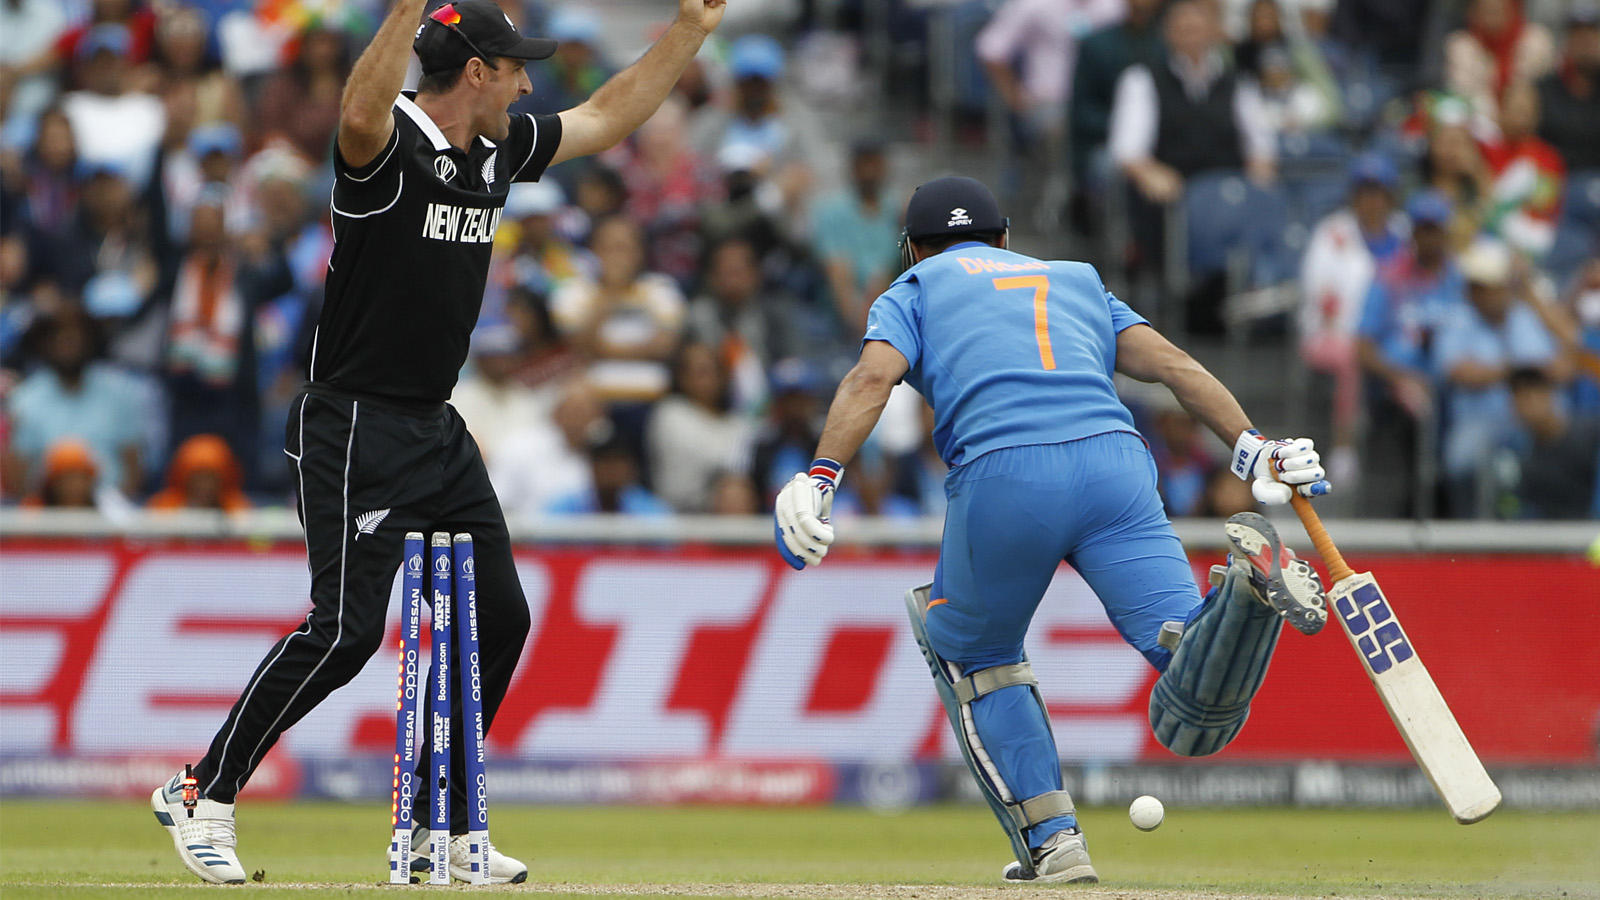 icc-posts-dhoni-run-out-video-leaves-fans-fuming